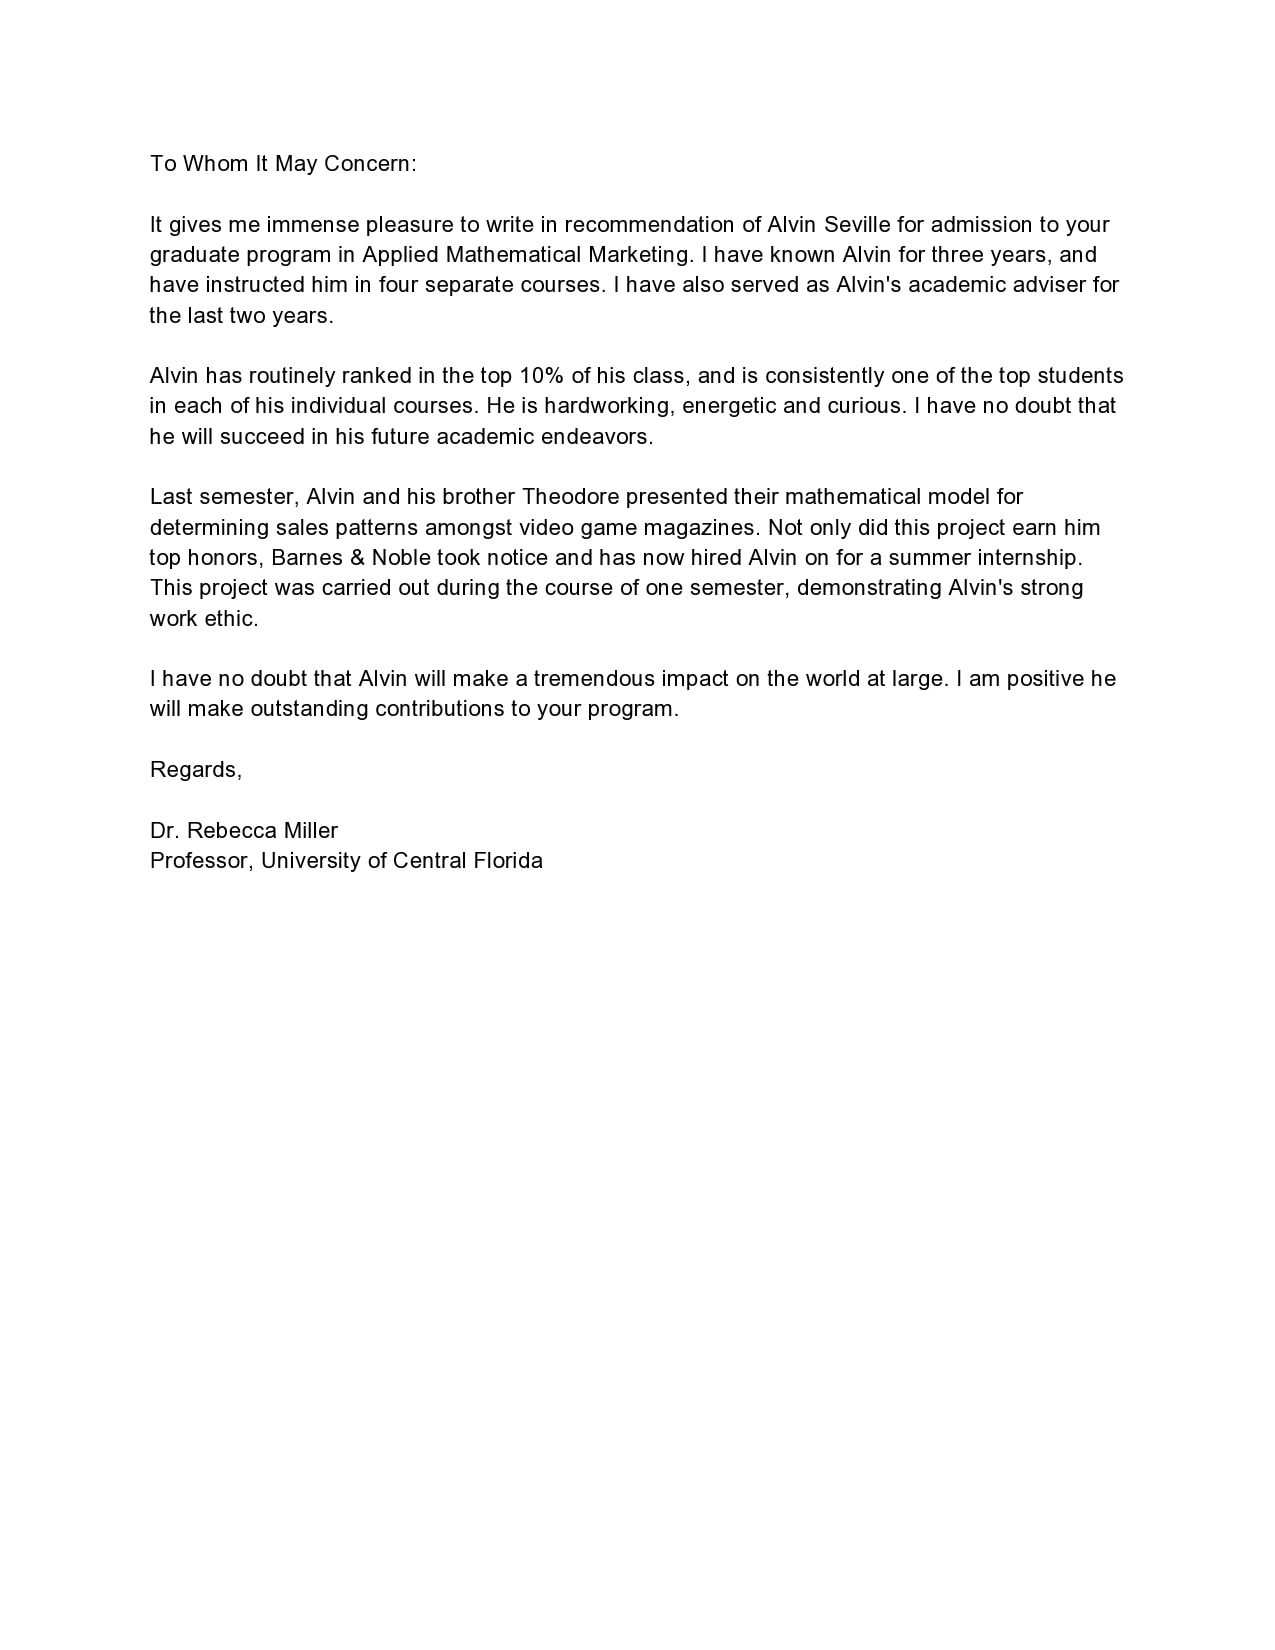 Sample Recommendation Letter For Intern from templatearchive.com